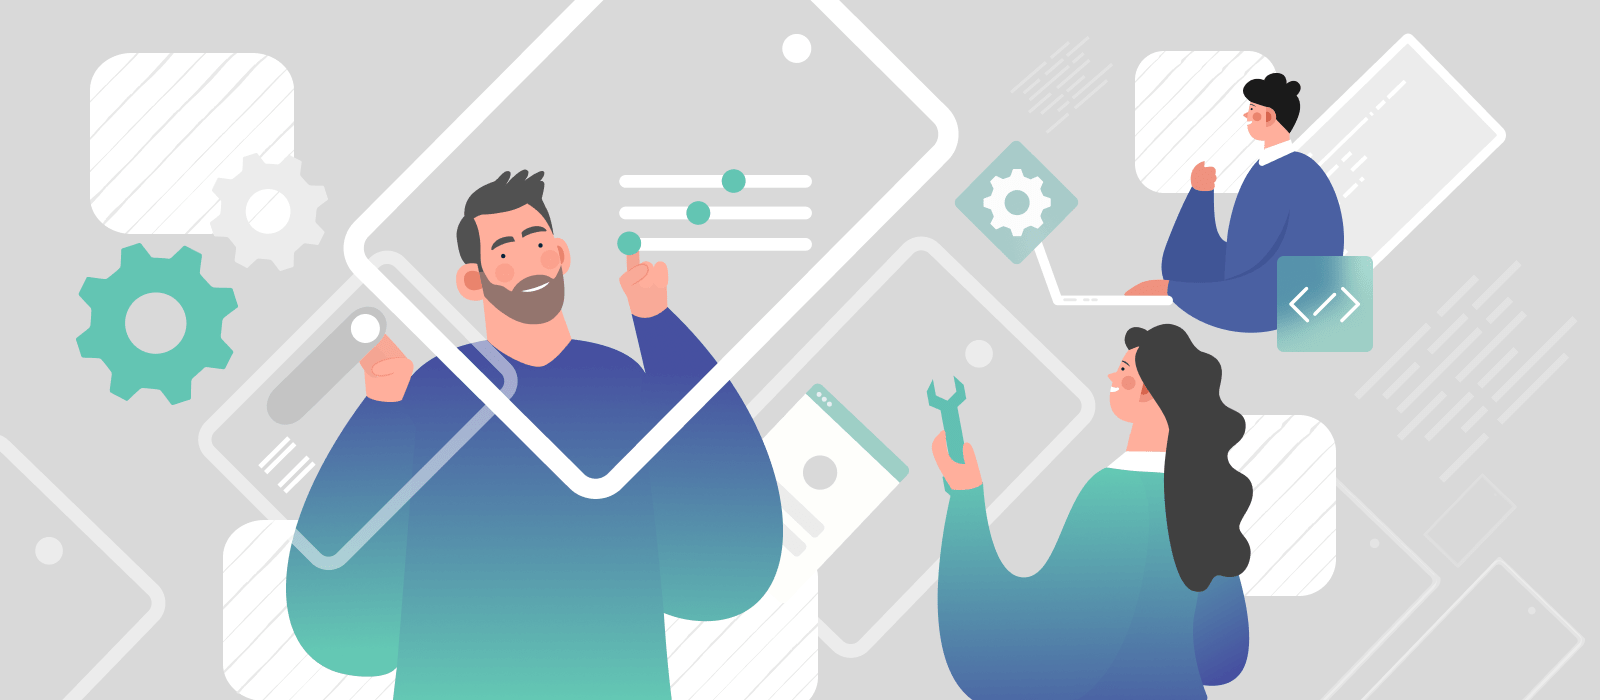 People building software with the help of website builders